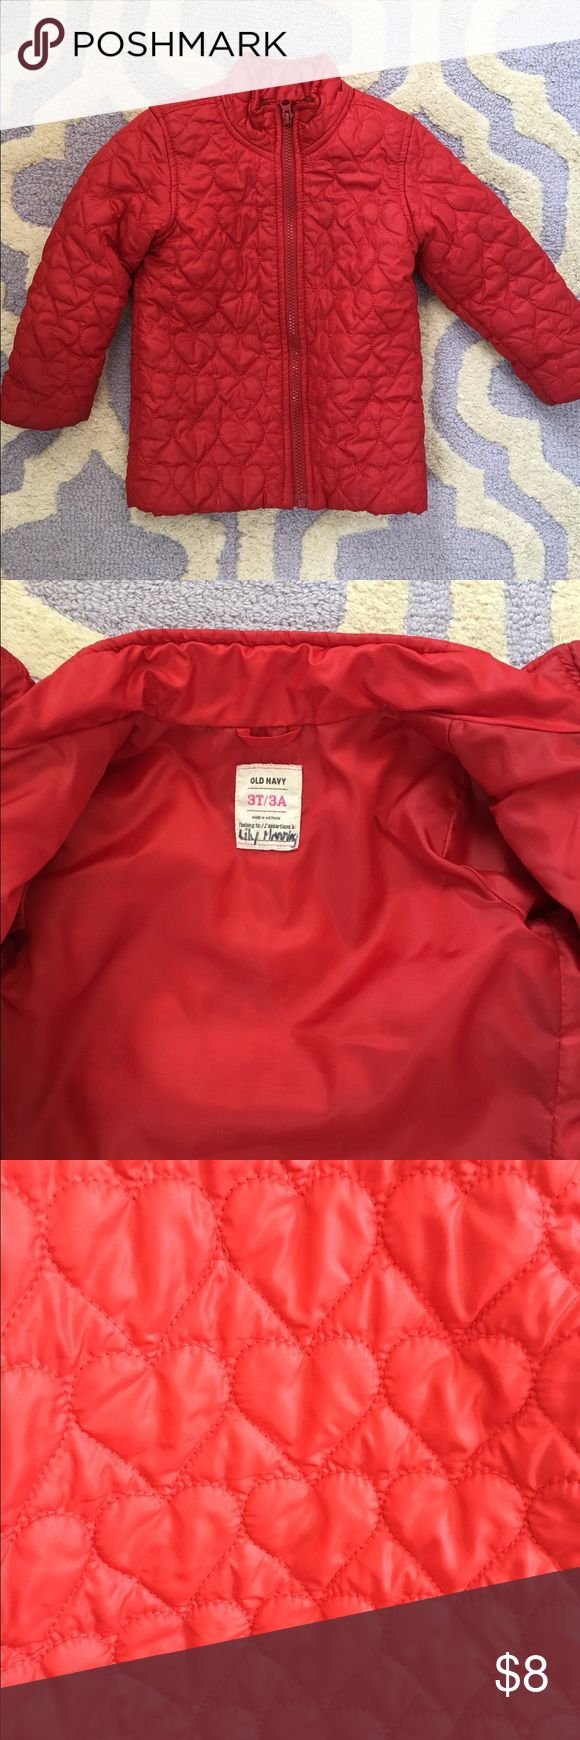 Girls Old Navy heart jacket Girls red Old Navy light weight puffy heart jacket. Some minor wear but in overall good condition. Has child's name written inside but no major flaws. Old Navy Jackets & Coats